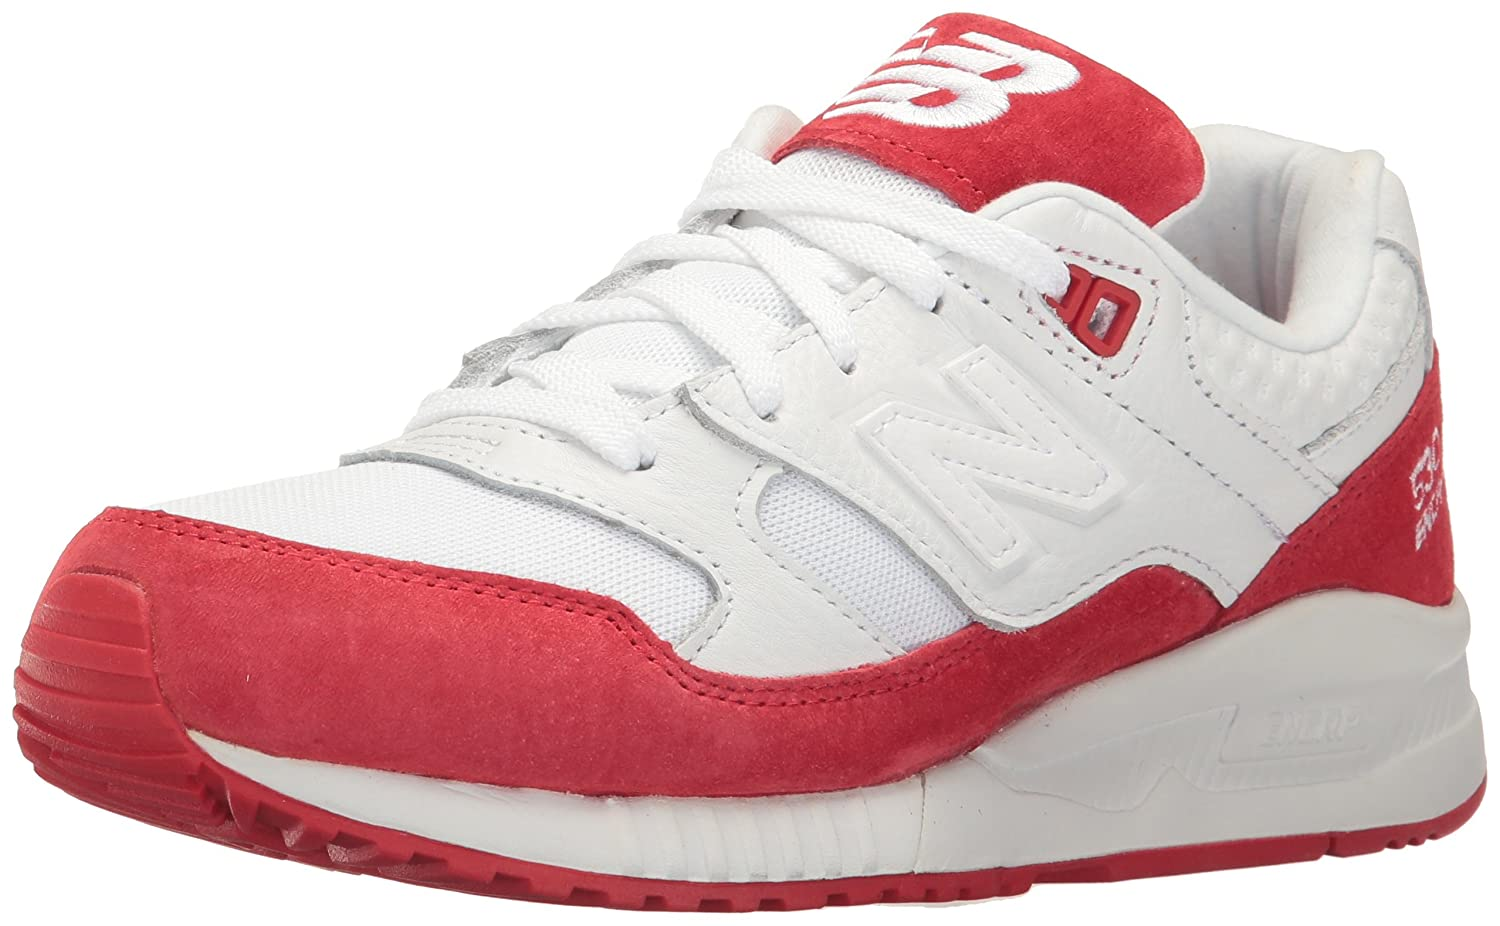 New Balance Women's 530 90s Running Lifestyle Fashion Sneaker B01M0LQYP5 7 B(M) US|White/Alpha Red